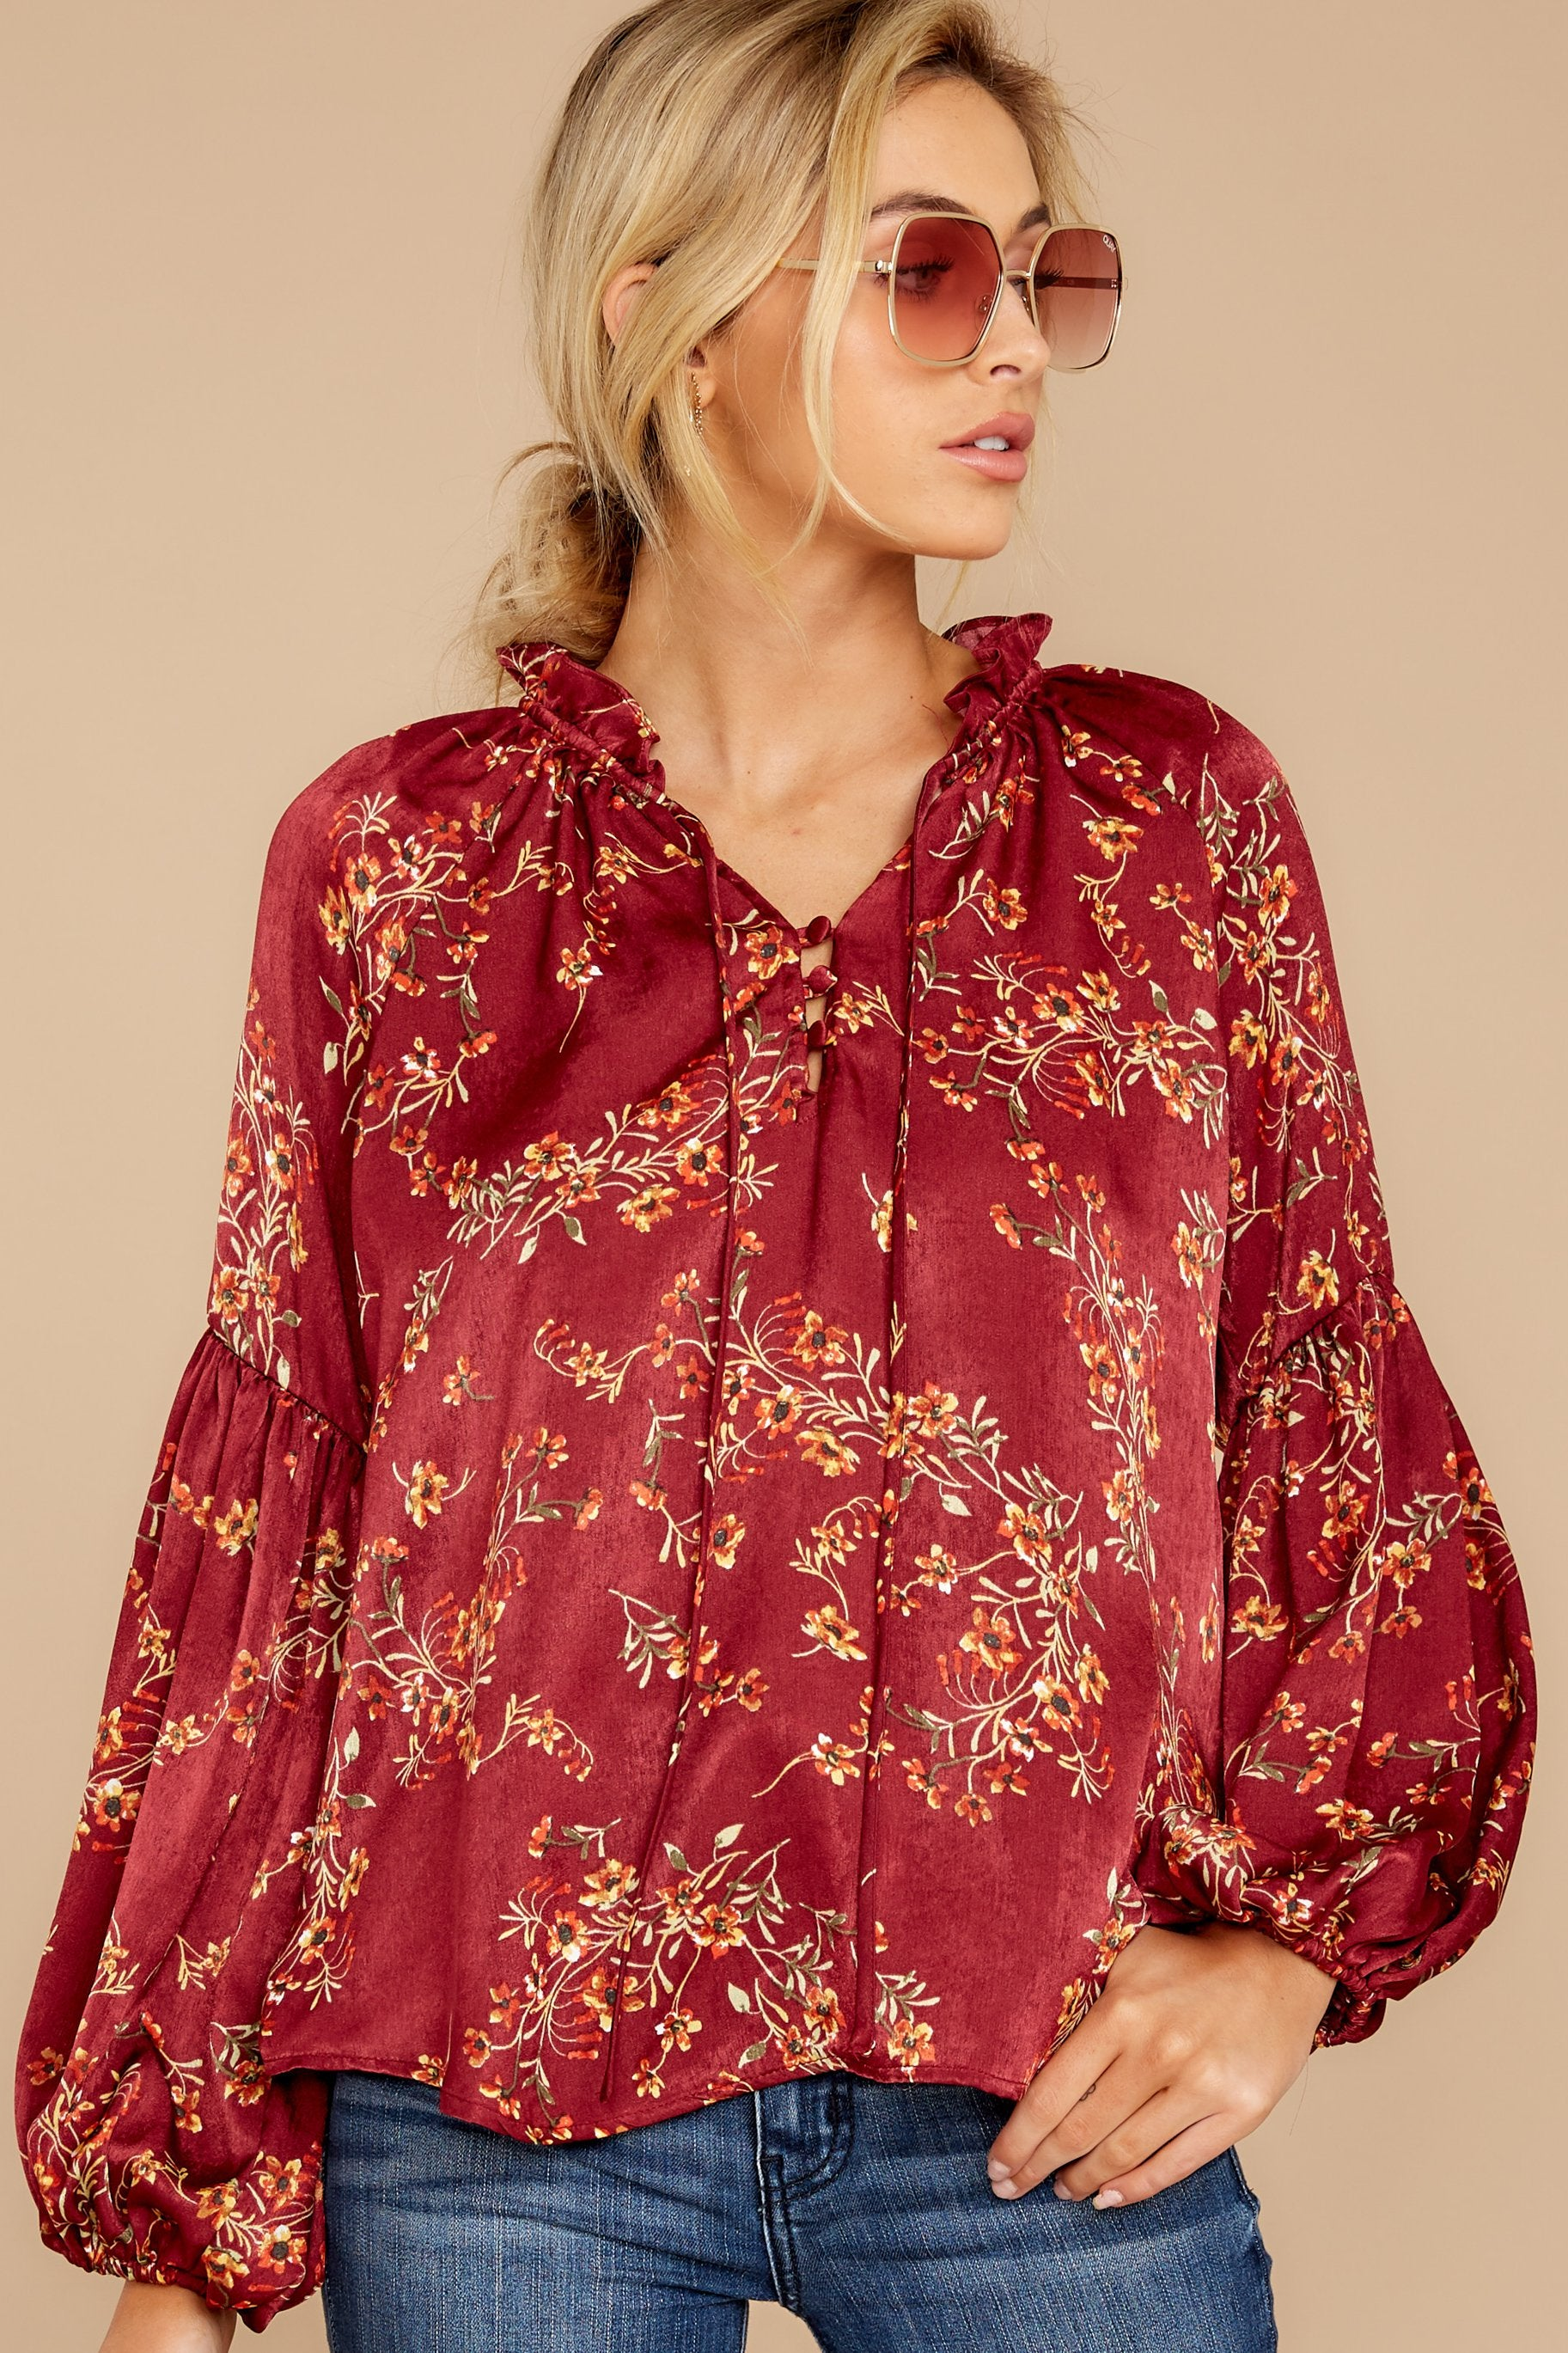 3 Wake Up The Wonder Burgundy Floral Print Top at reddress.com